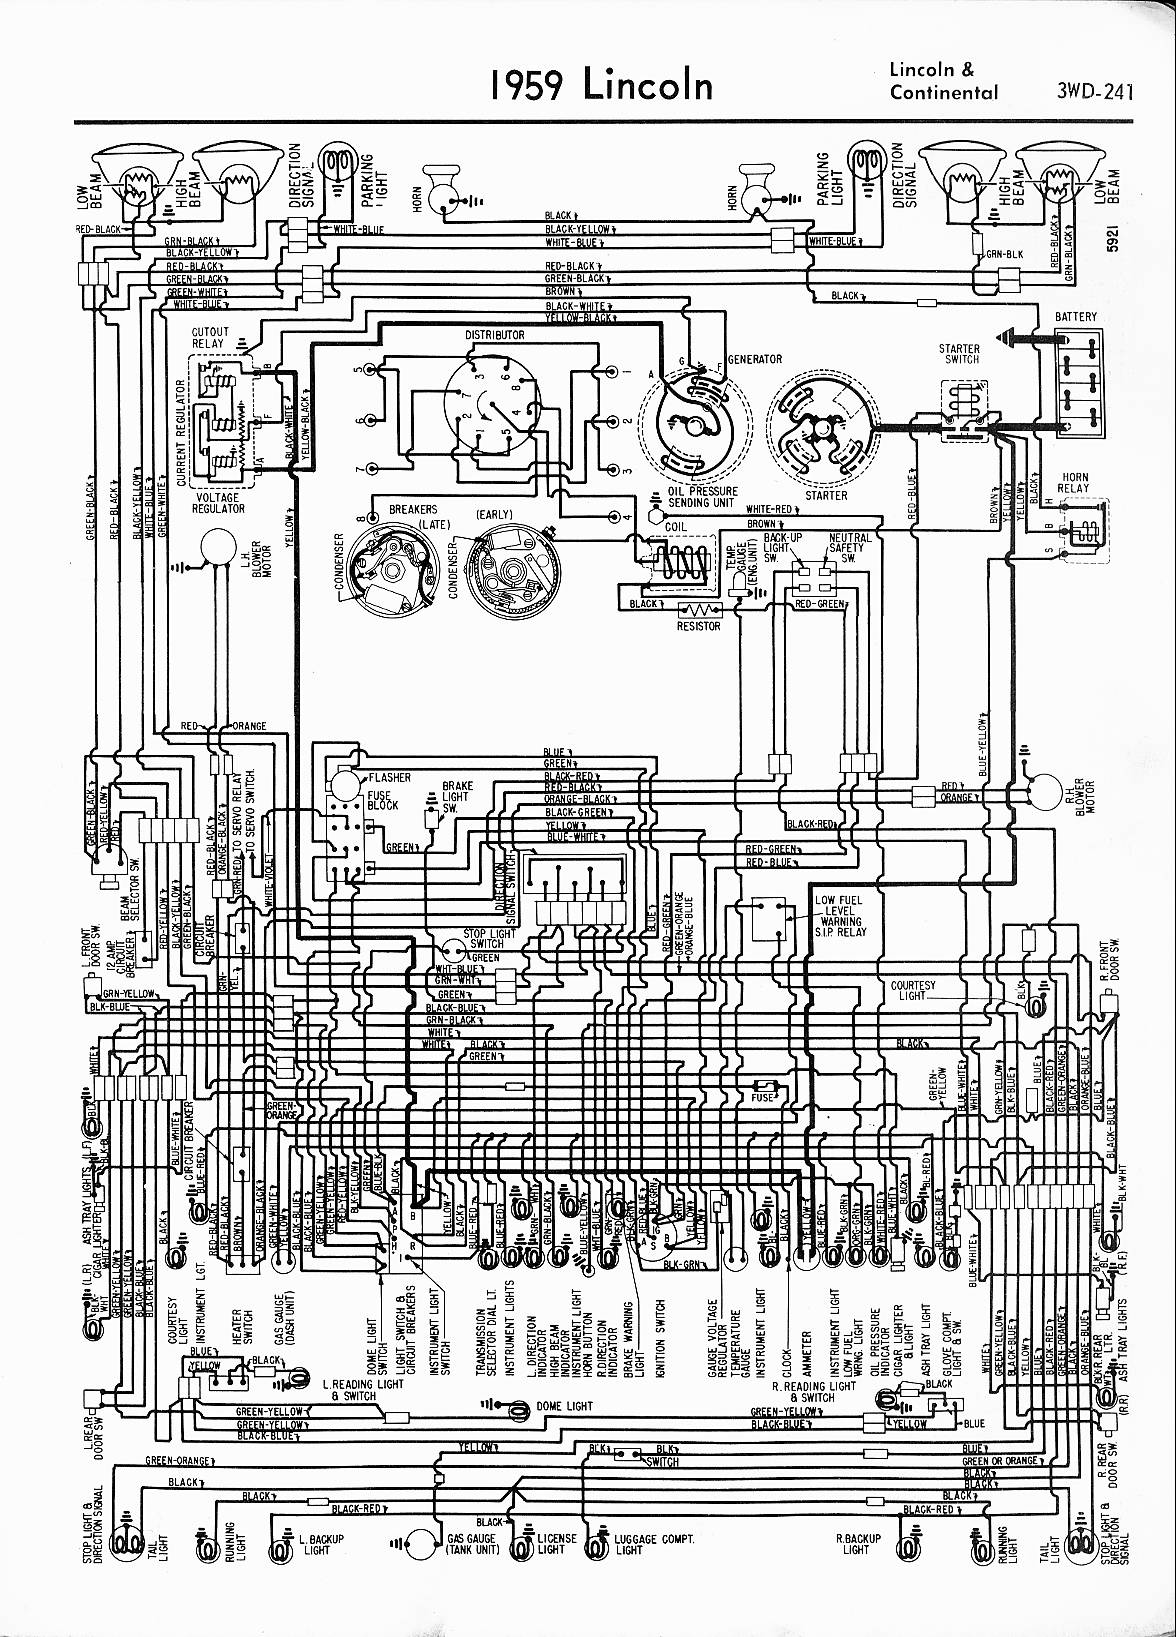 MWireLin_Lin57_z3wd 241z_004 lincoln wiring diagrams 1957 1965 2001 lincoln town car wiring diagram at aneh.co